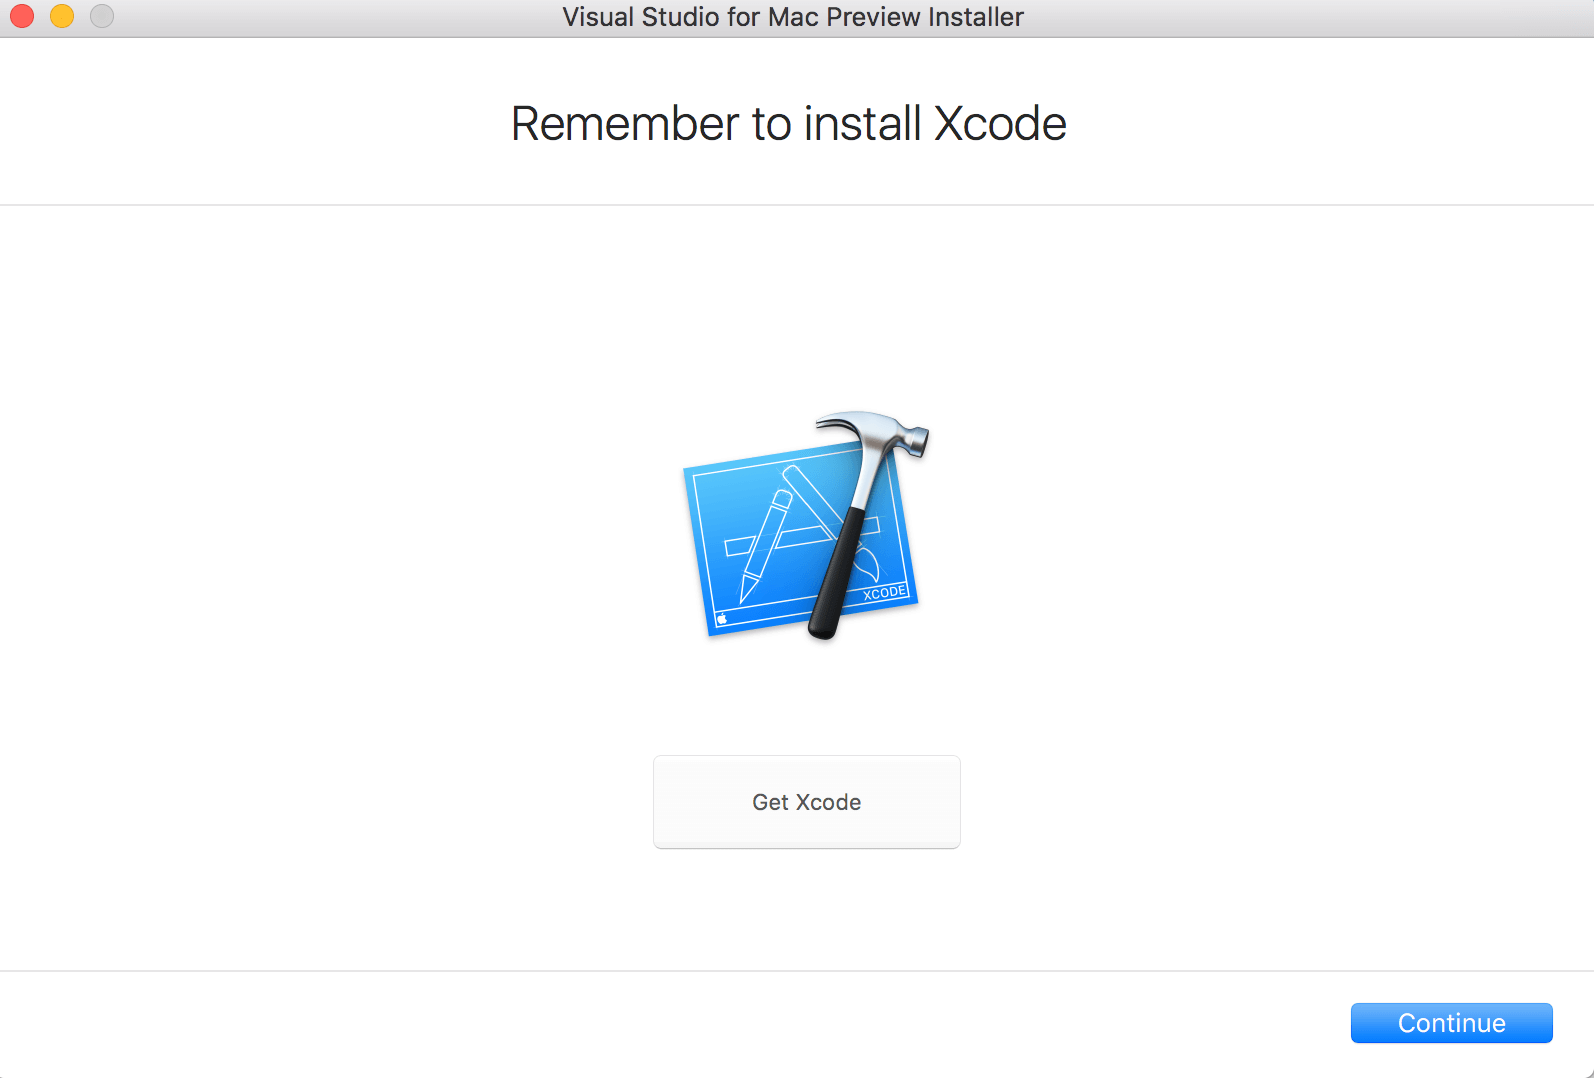 Remember to install Xcode